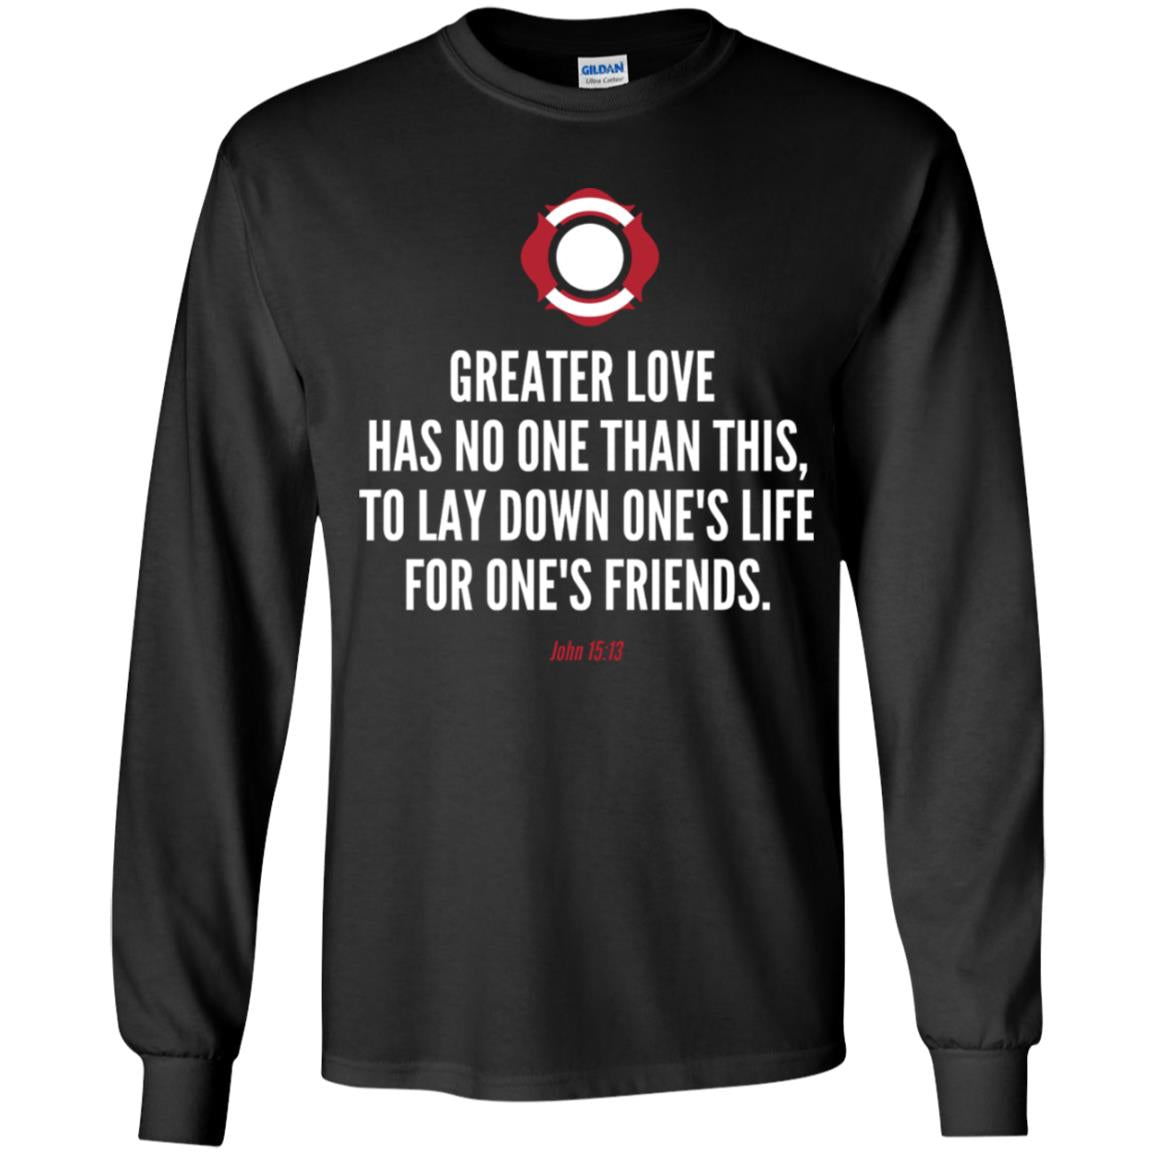 No Greater Love Verse Youth LS T-Shirt by Gildan